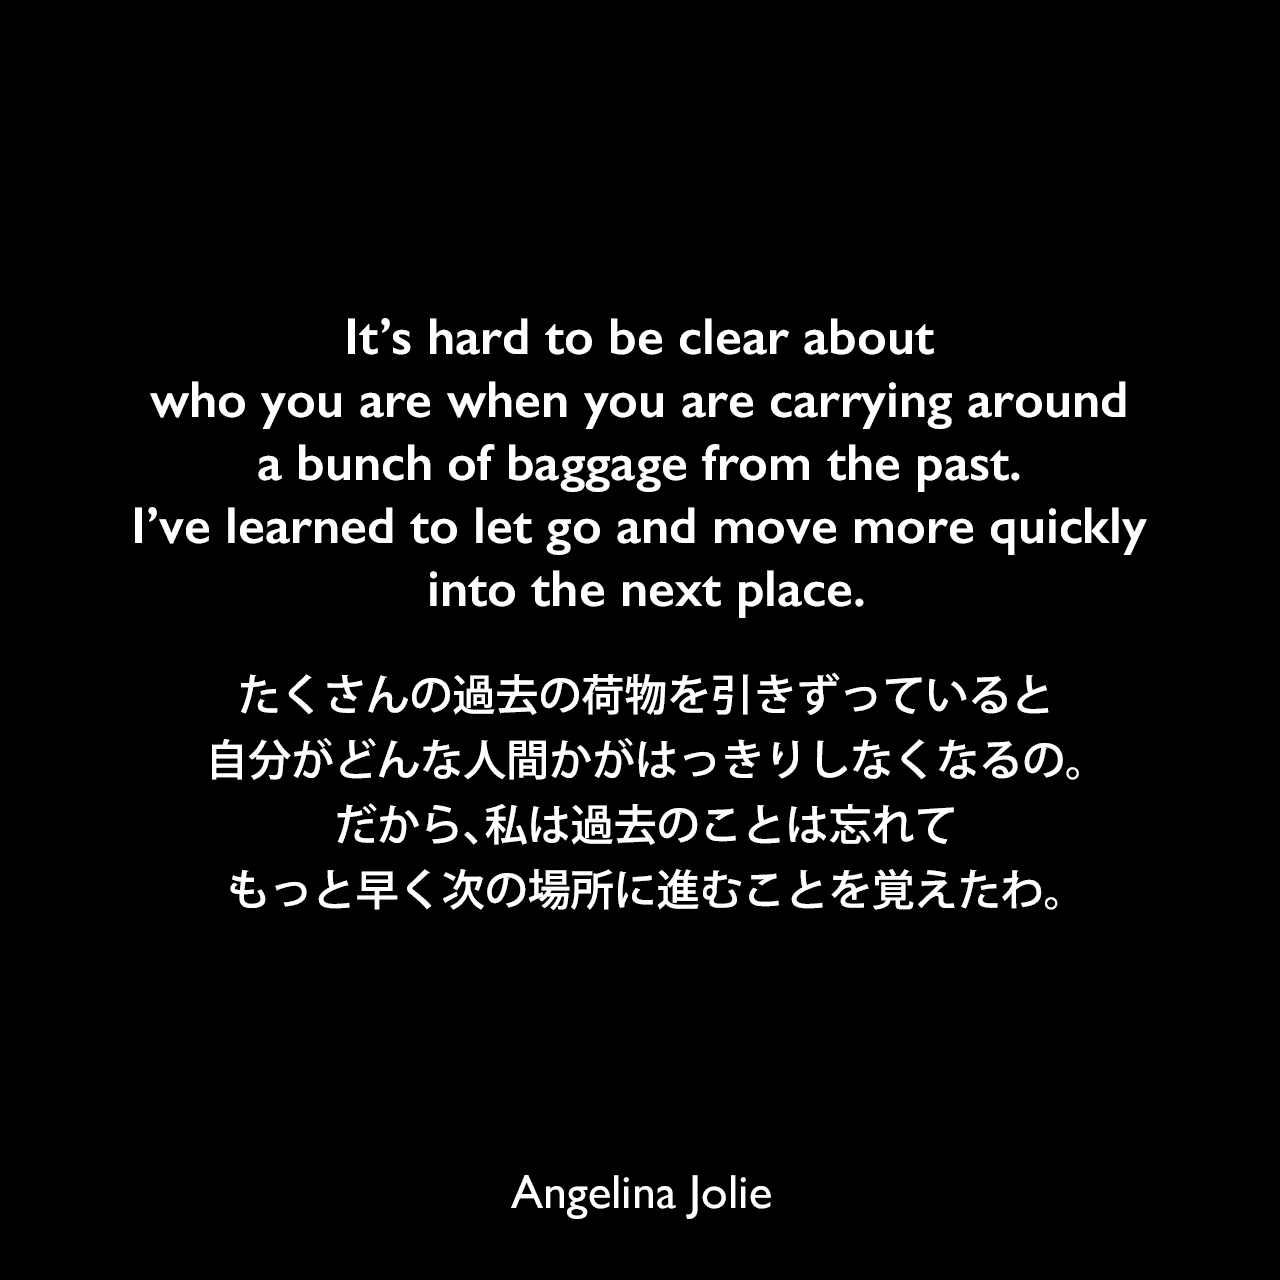 It's hard to be clear about who you are when you are carrying around a bunch of baggage from the past. I've learned to let go and move more quickly into the next place.たくさんの過去の荷物を引きずっていると、自分がどんな人間かがはっきりしなくなるの。(だから)私は過去のことは忘れて、もっと早く次の場所に進むことを覚えたわ。Angelina Jolie